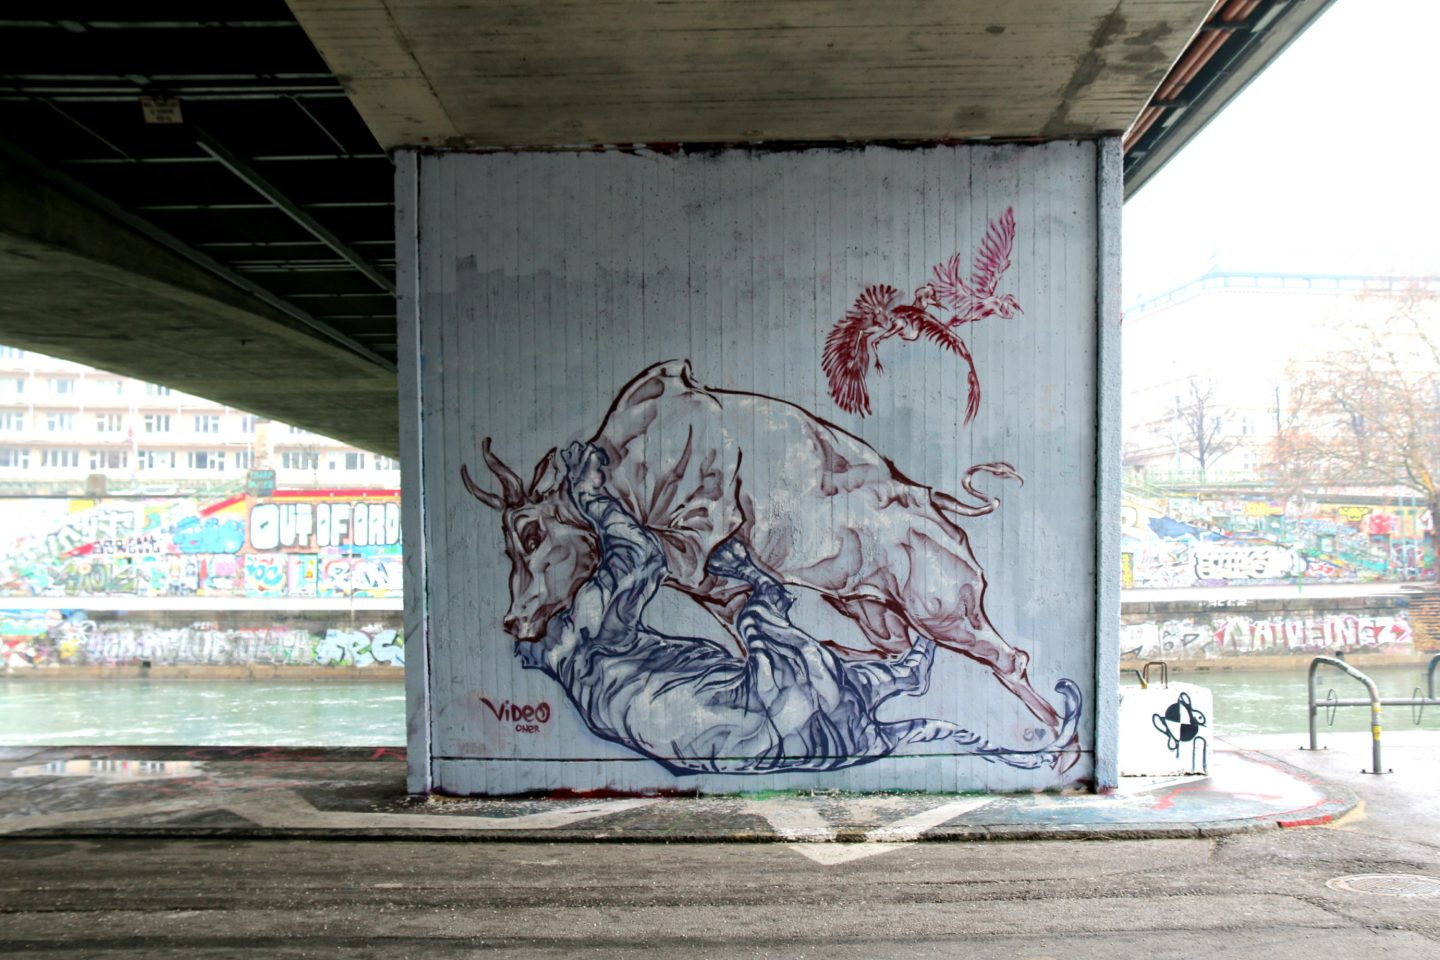 Vienna street art by the canal 20